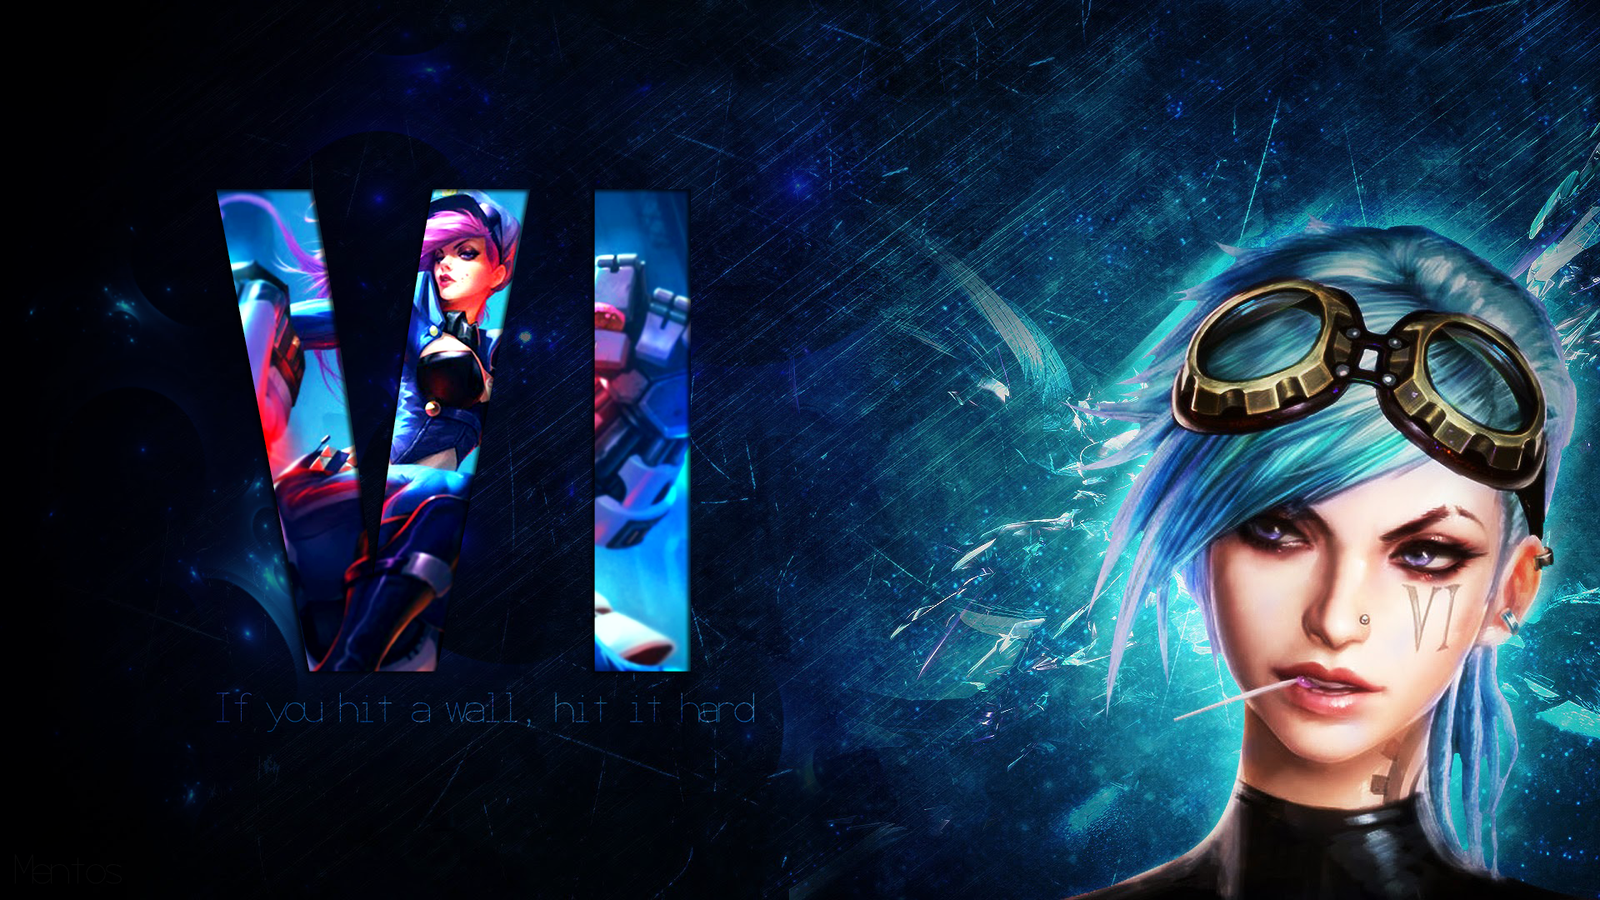 [League of Legends] FanArt - Vi wallpaper by xMentos on ...